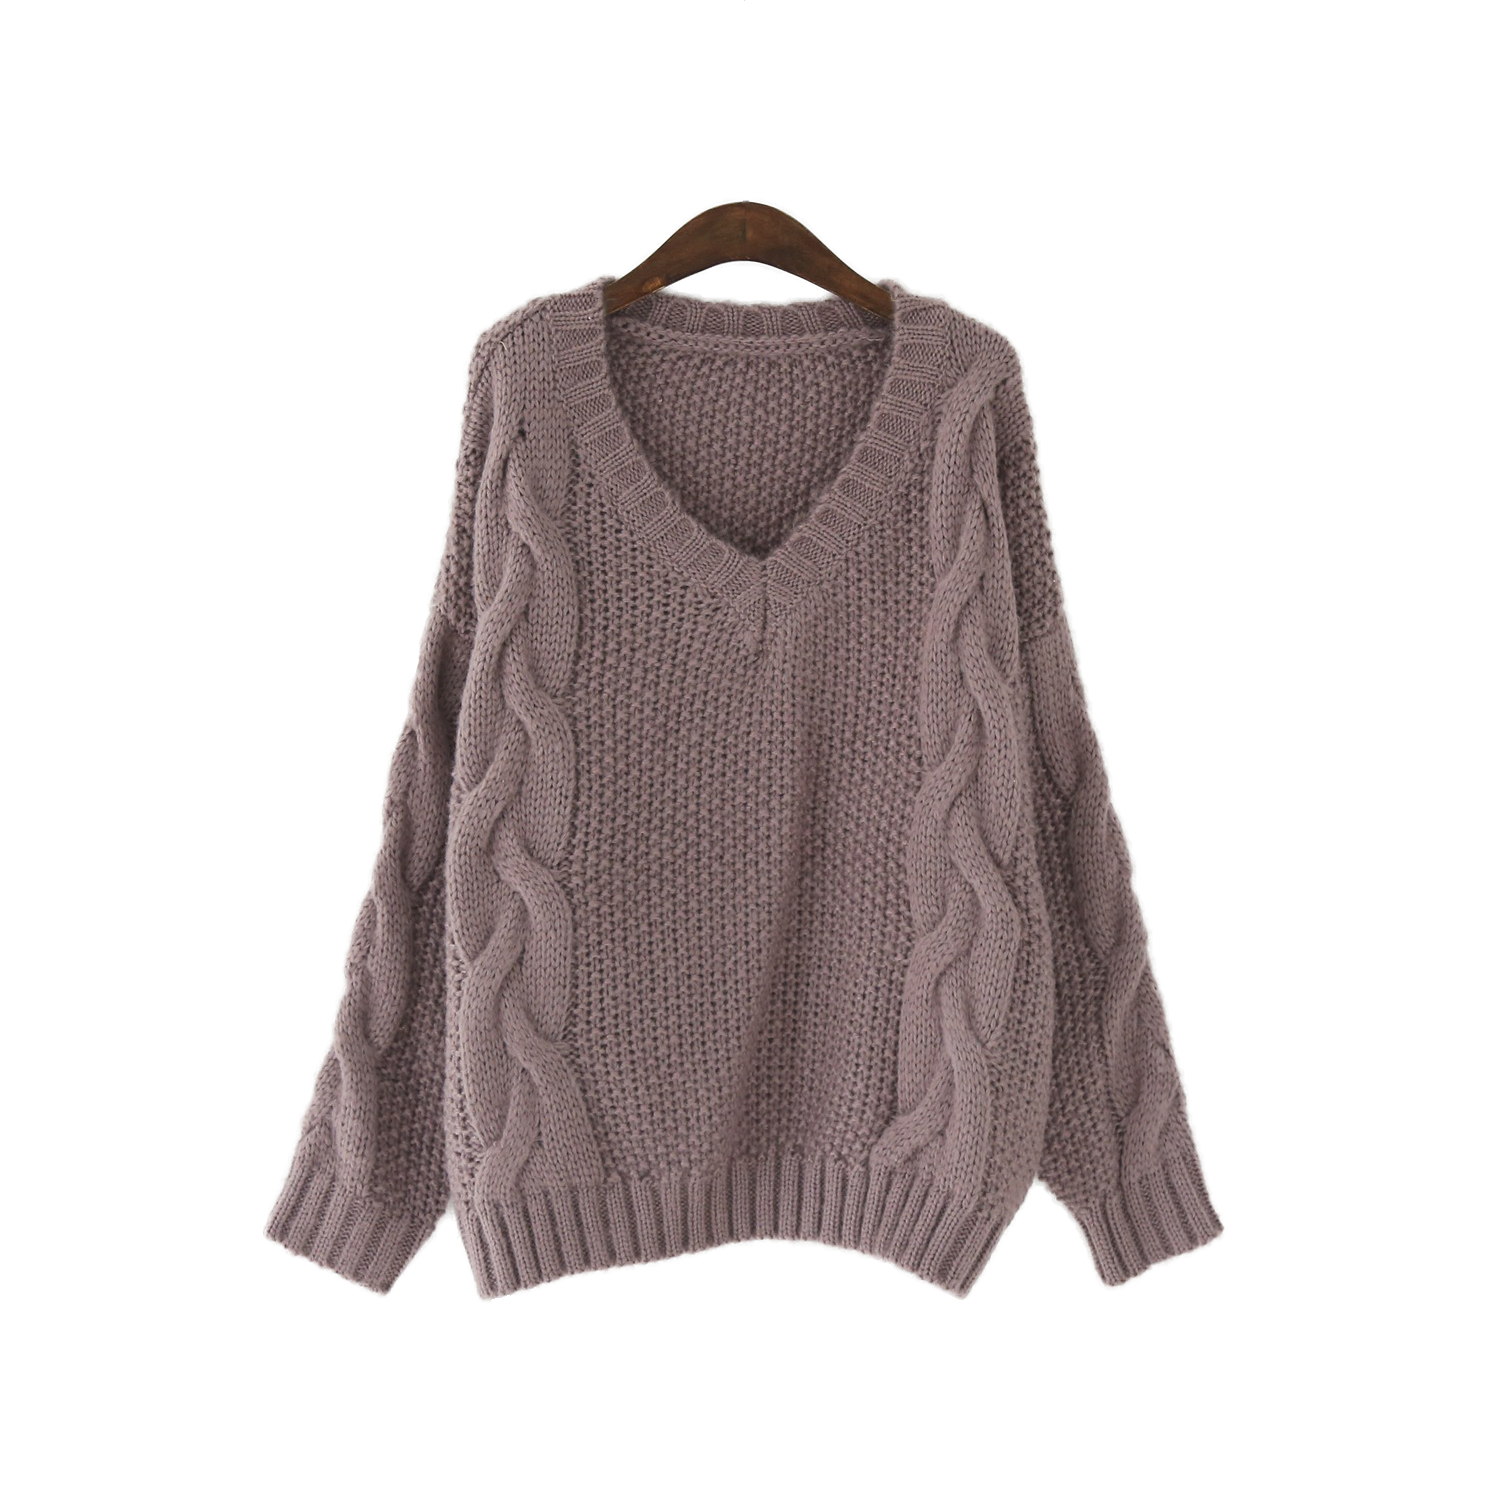 Oversize Cable Knit Pullover Sweater Women V Neck Pattern Jumpers ...